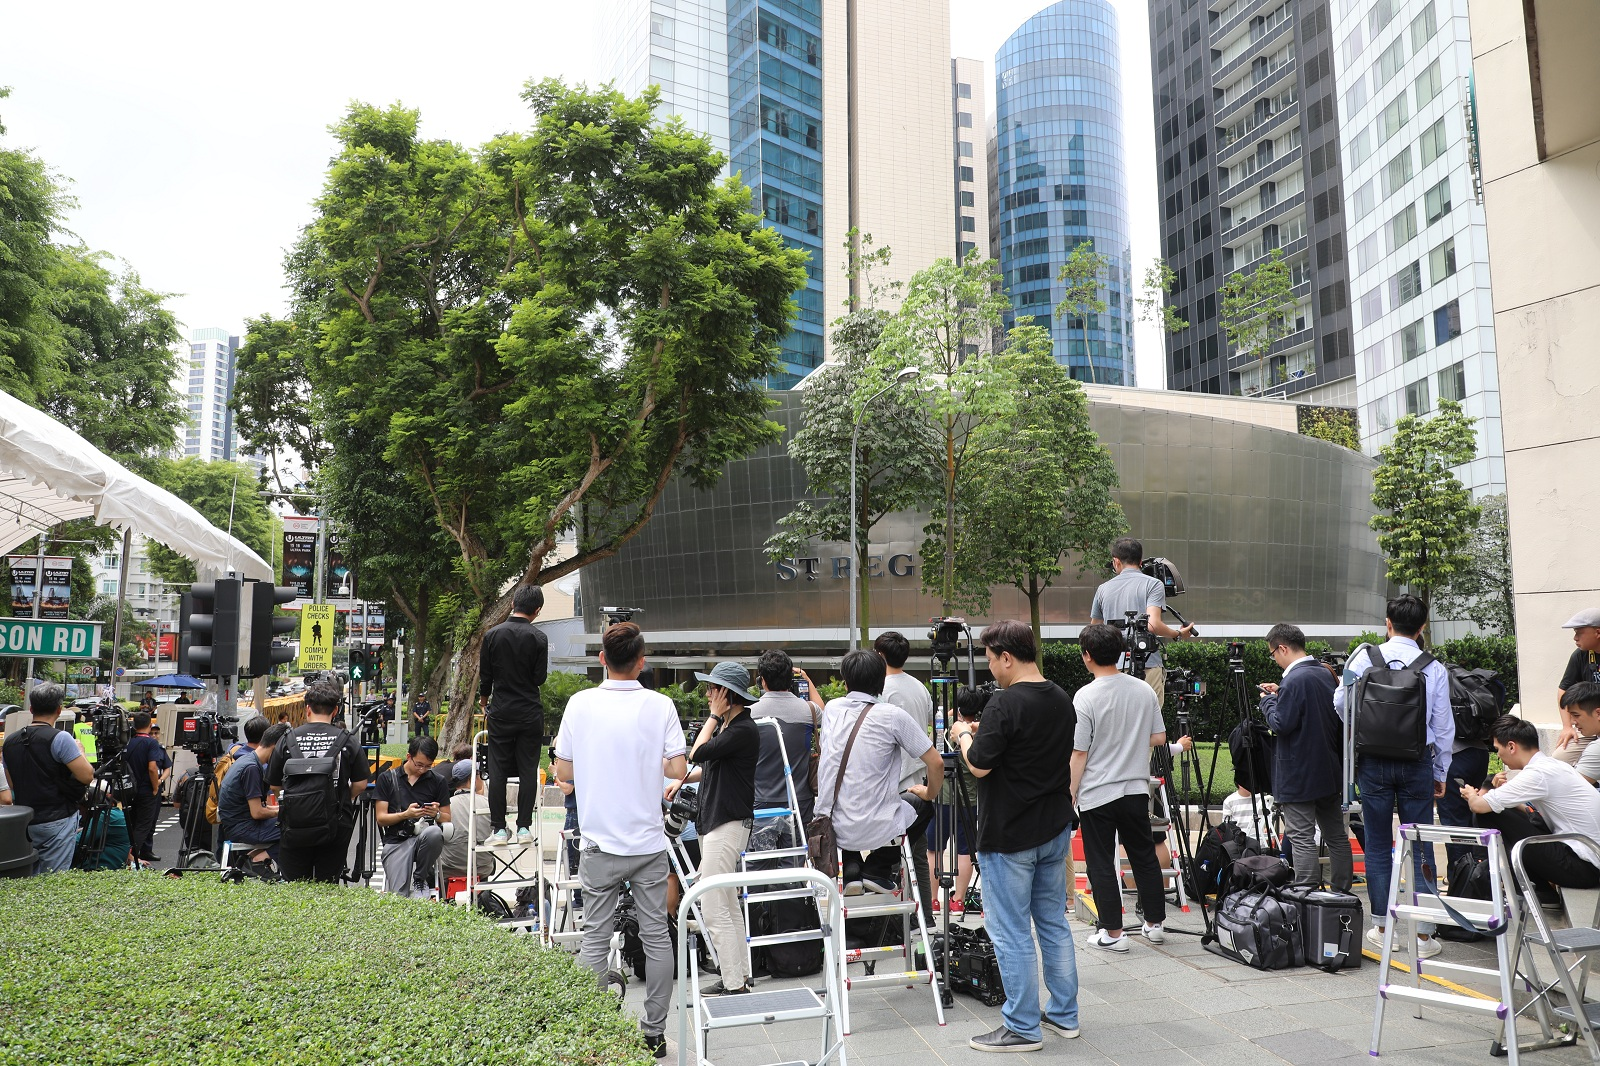 about 100 reporters are waiting for Kim Jong-un outside the hotel.JPG